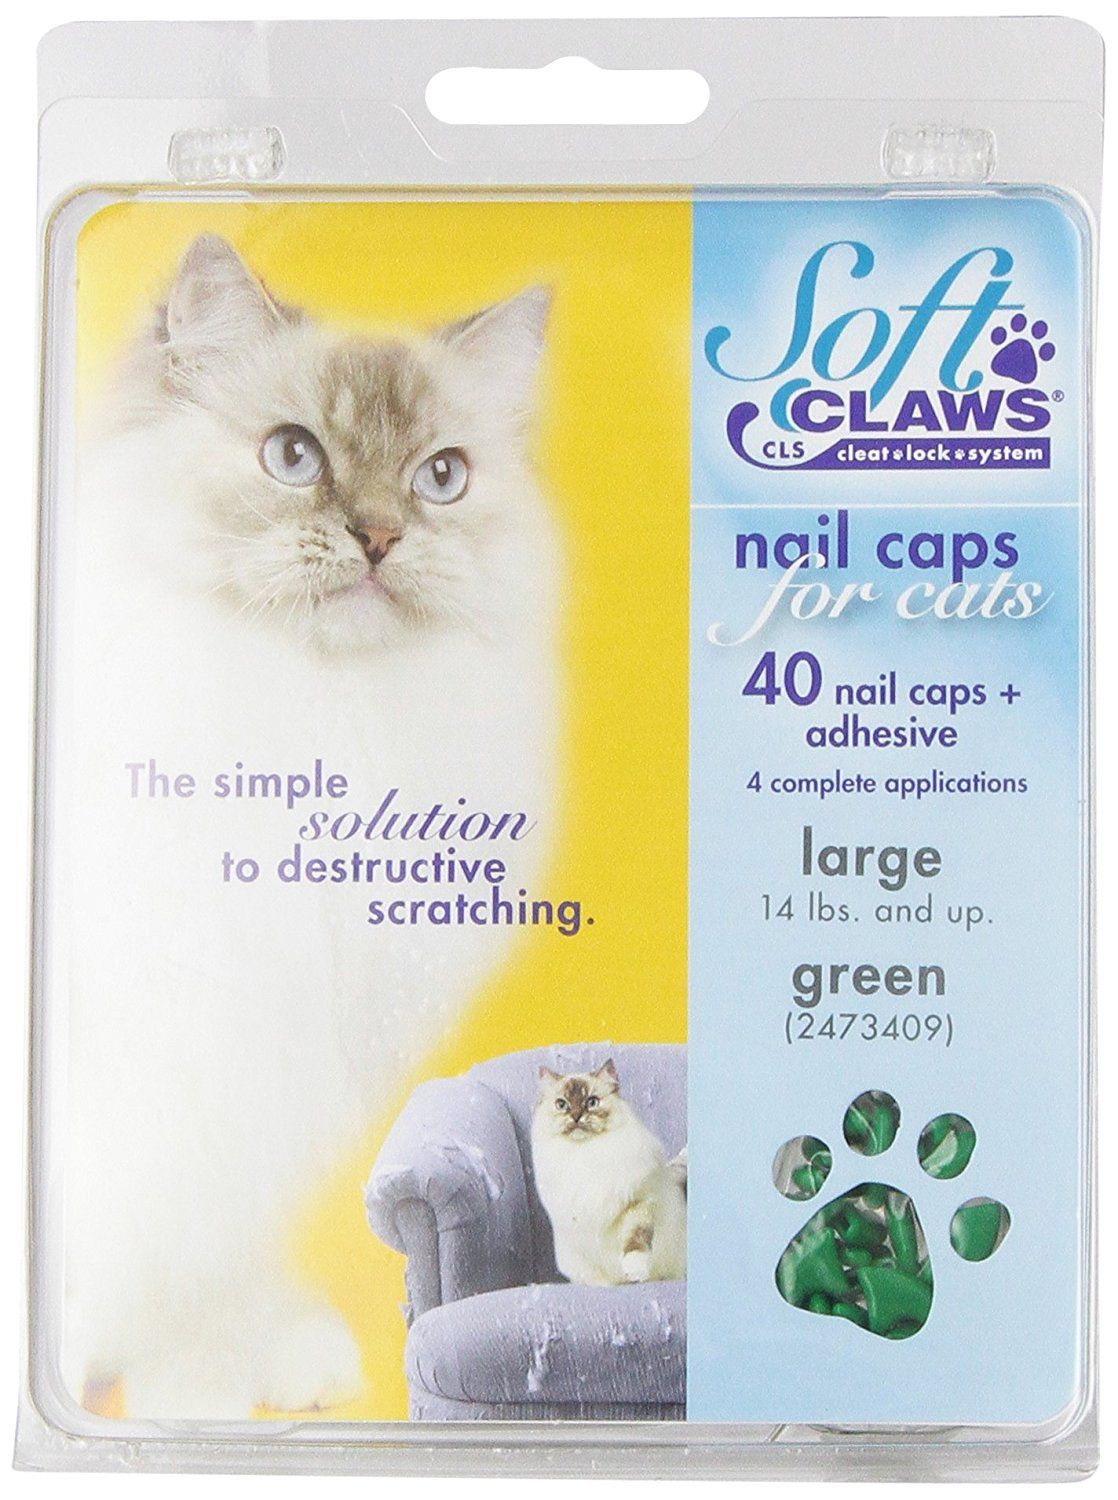 Feline Soft Claws Cat Nail Caps Take Home Kit Large Green You Can Get Additional Details Click The Image Cat Groomin Cat Nail Caps Soft Claws Nail Caps